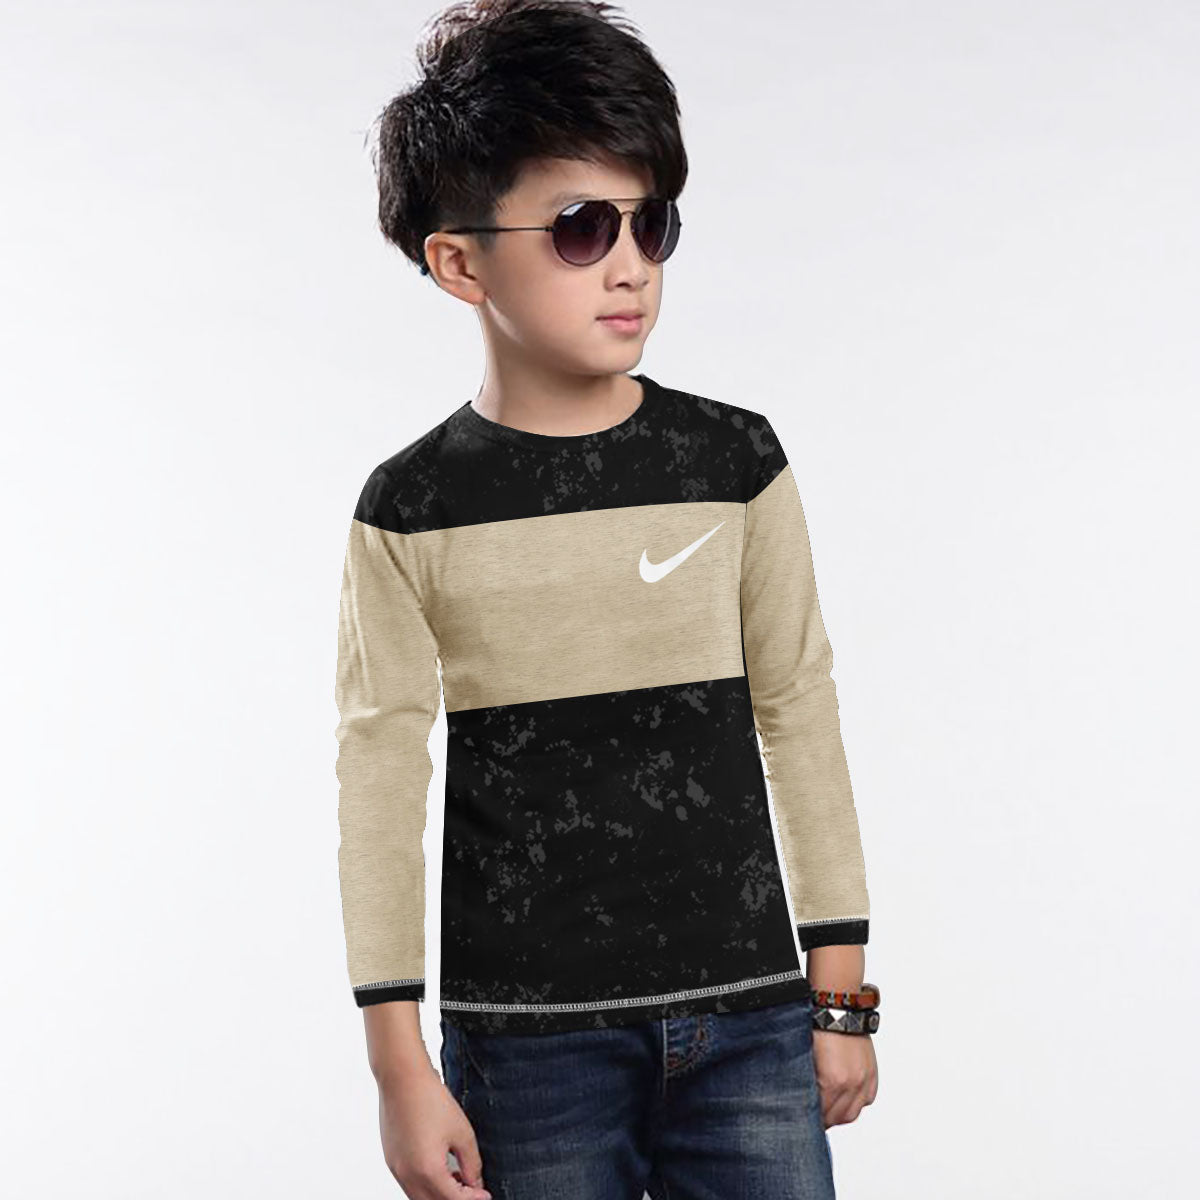 NK Crew Neck Single Jersey Long Sleeve Tee Shirt For Kids-Black Faded With Camel Melange Panel-SP3524